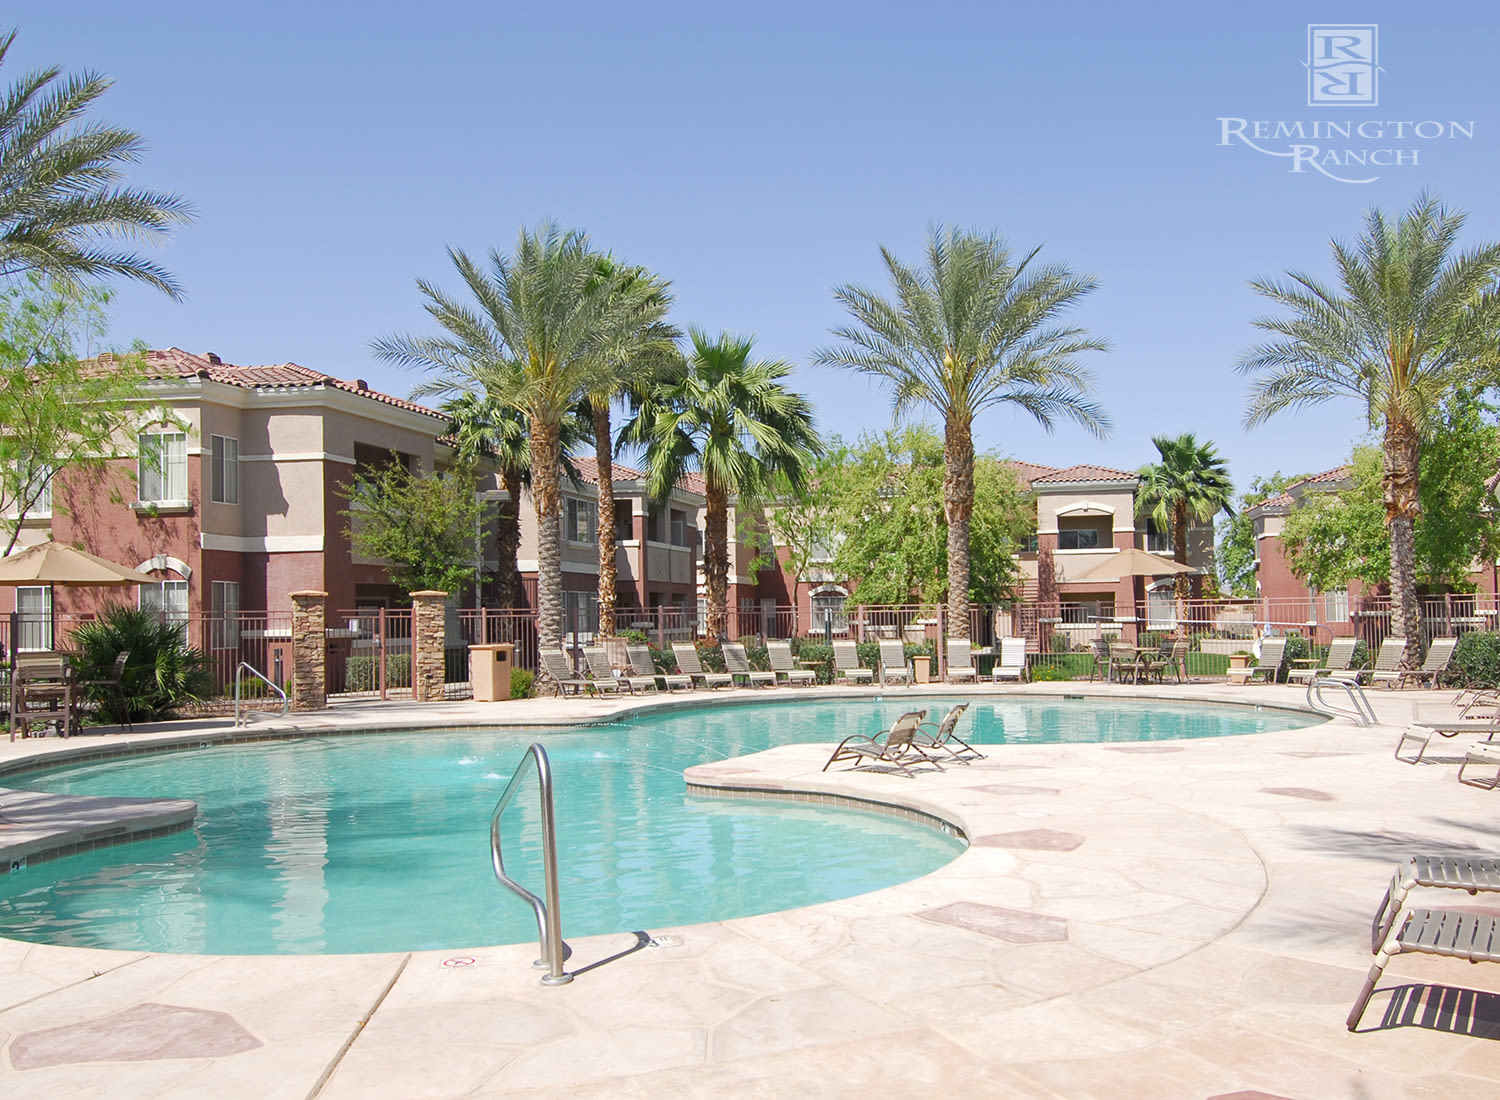 Remington Ranch apartments in Litchfield Park, Arizona